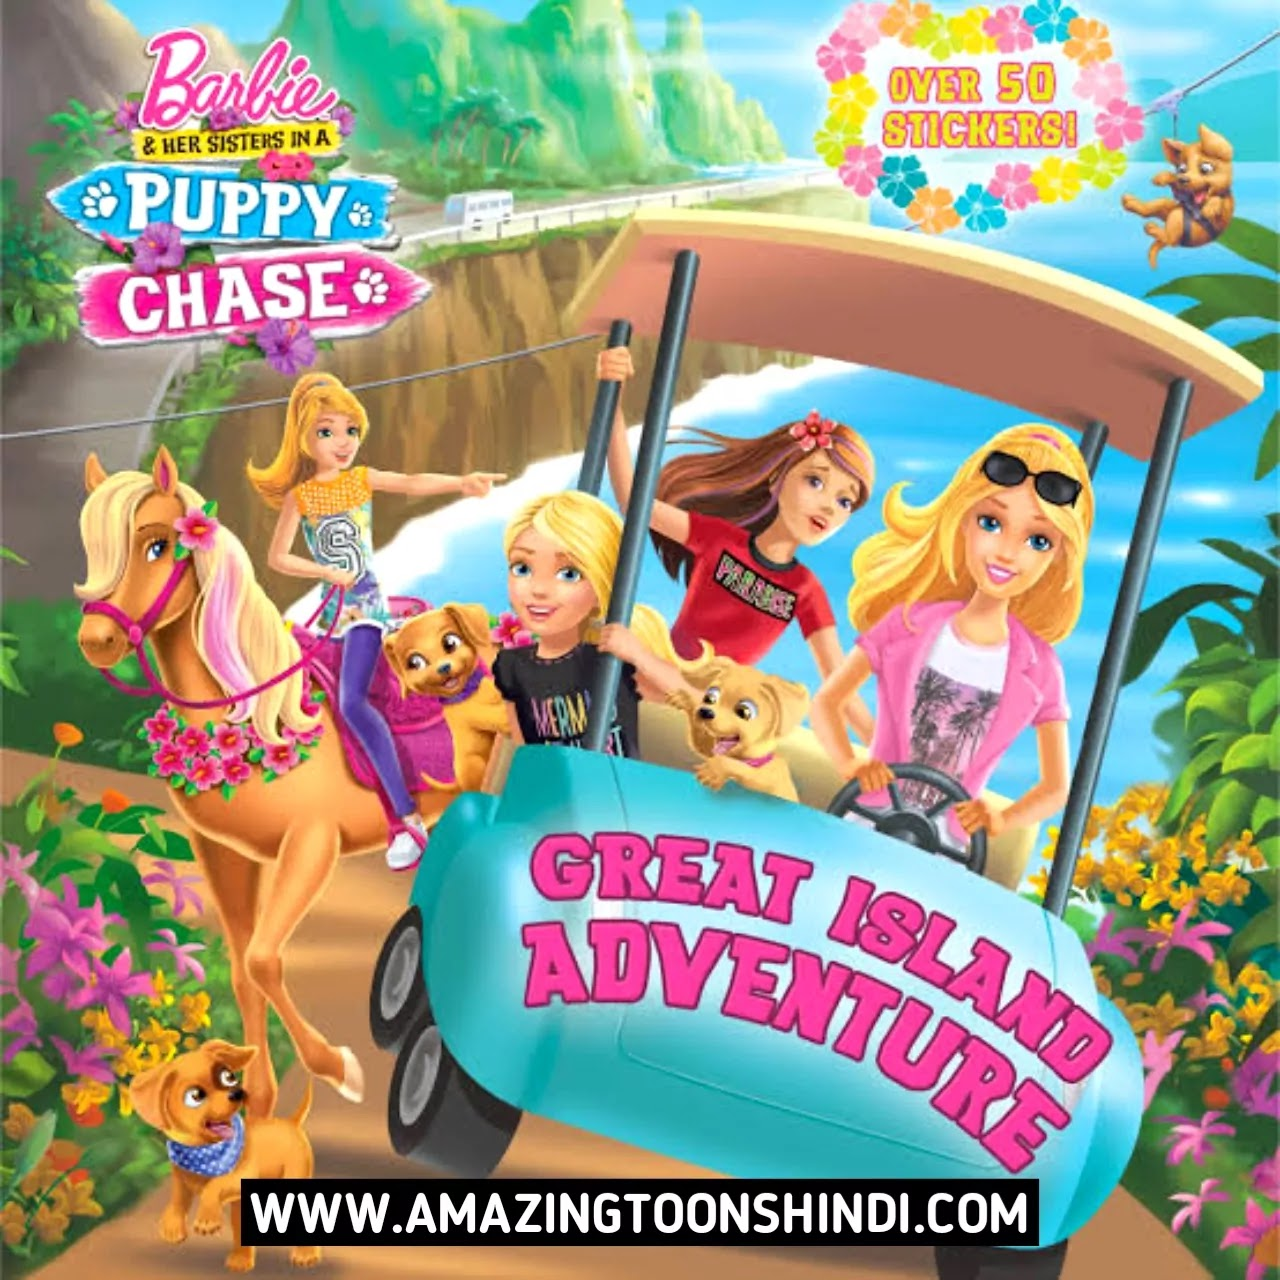 Barbie & Her Sisters in a Puppy Chase Full Movie